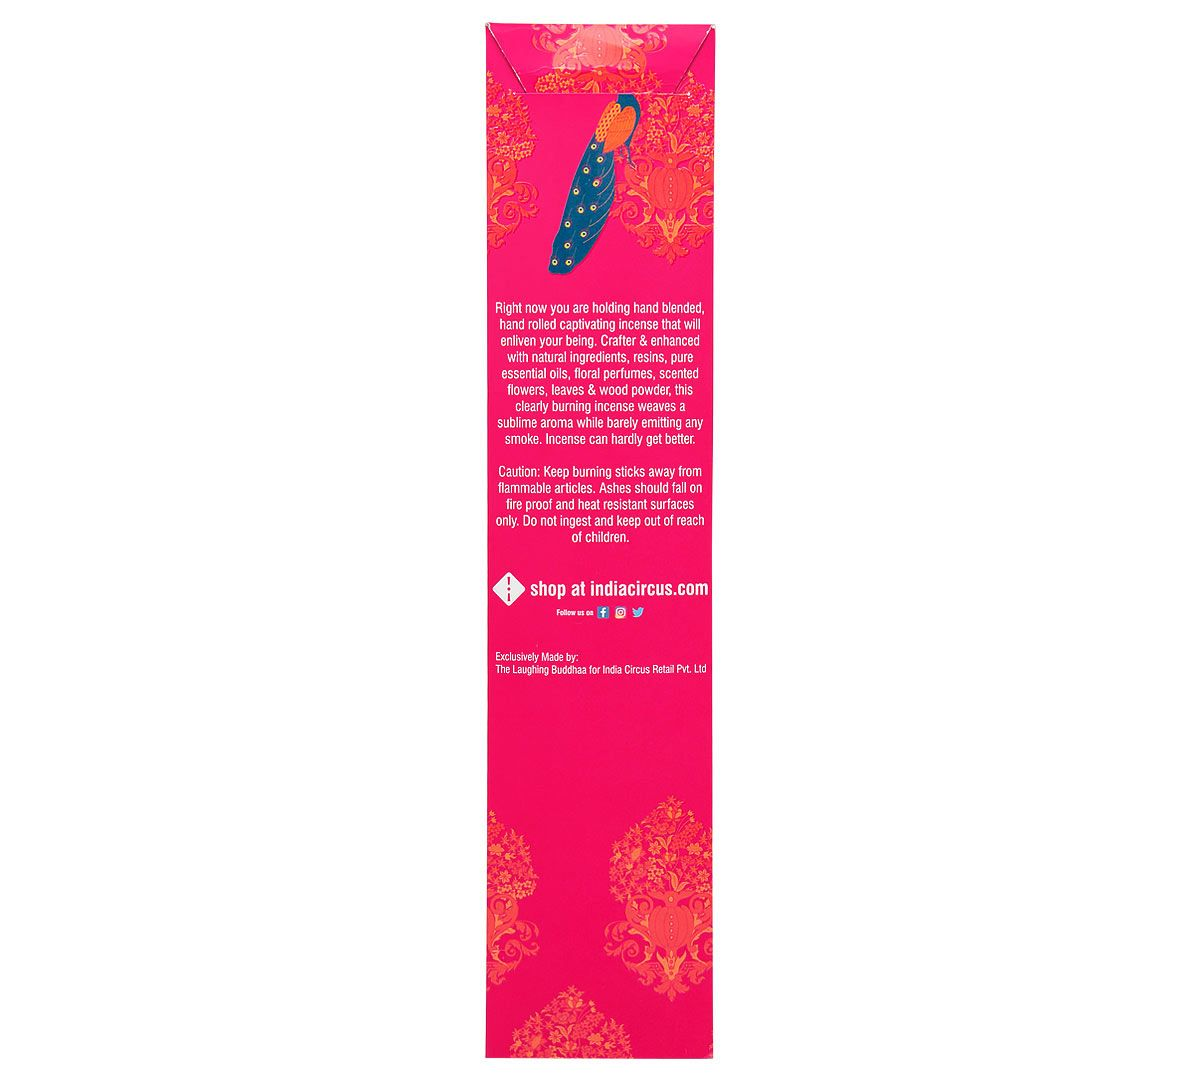 India Circus Mesmeric Musk Incense Stick